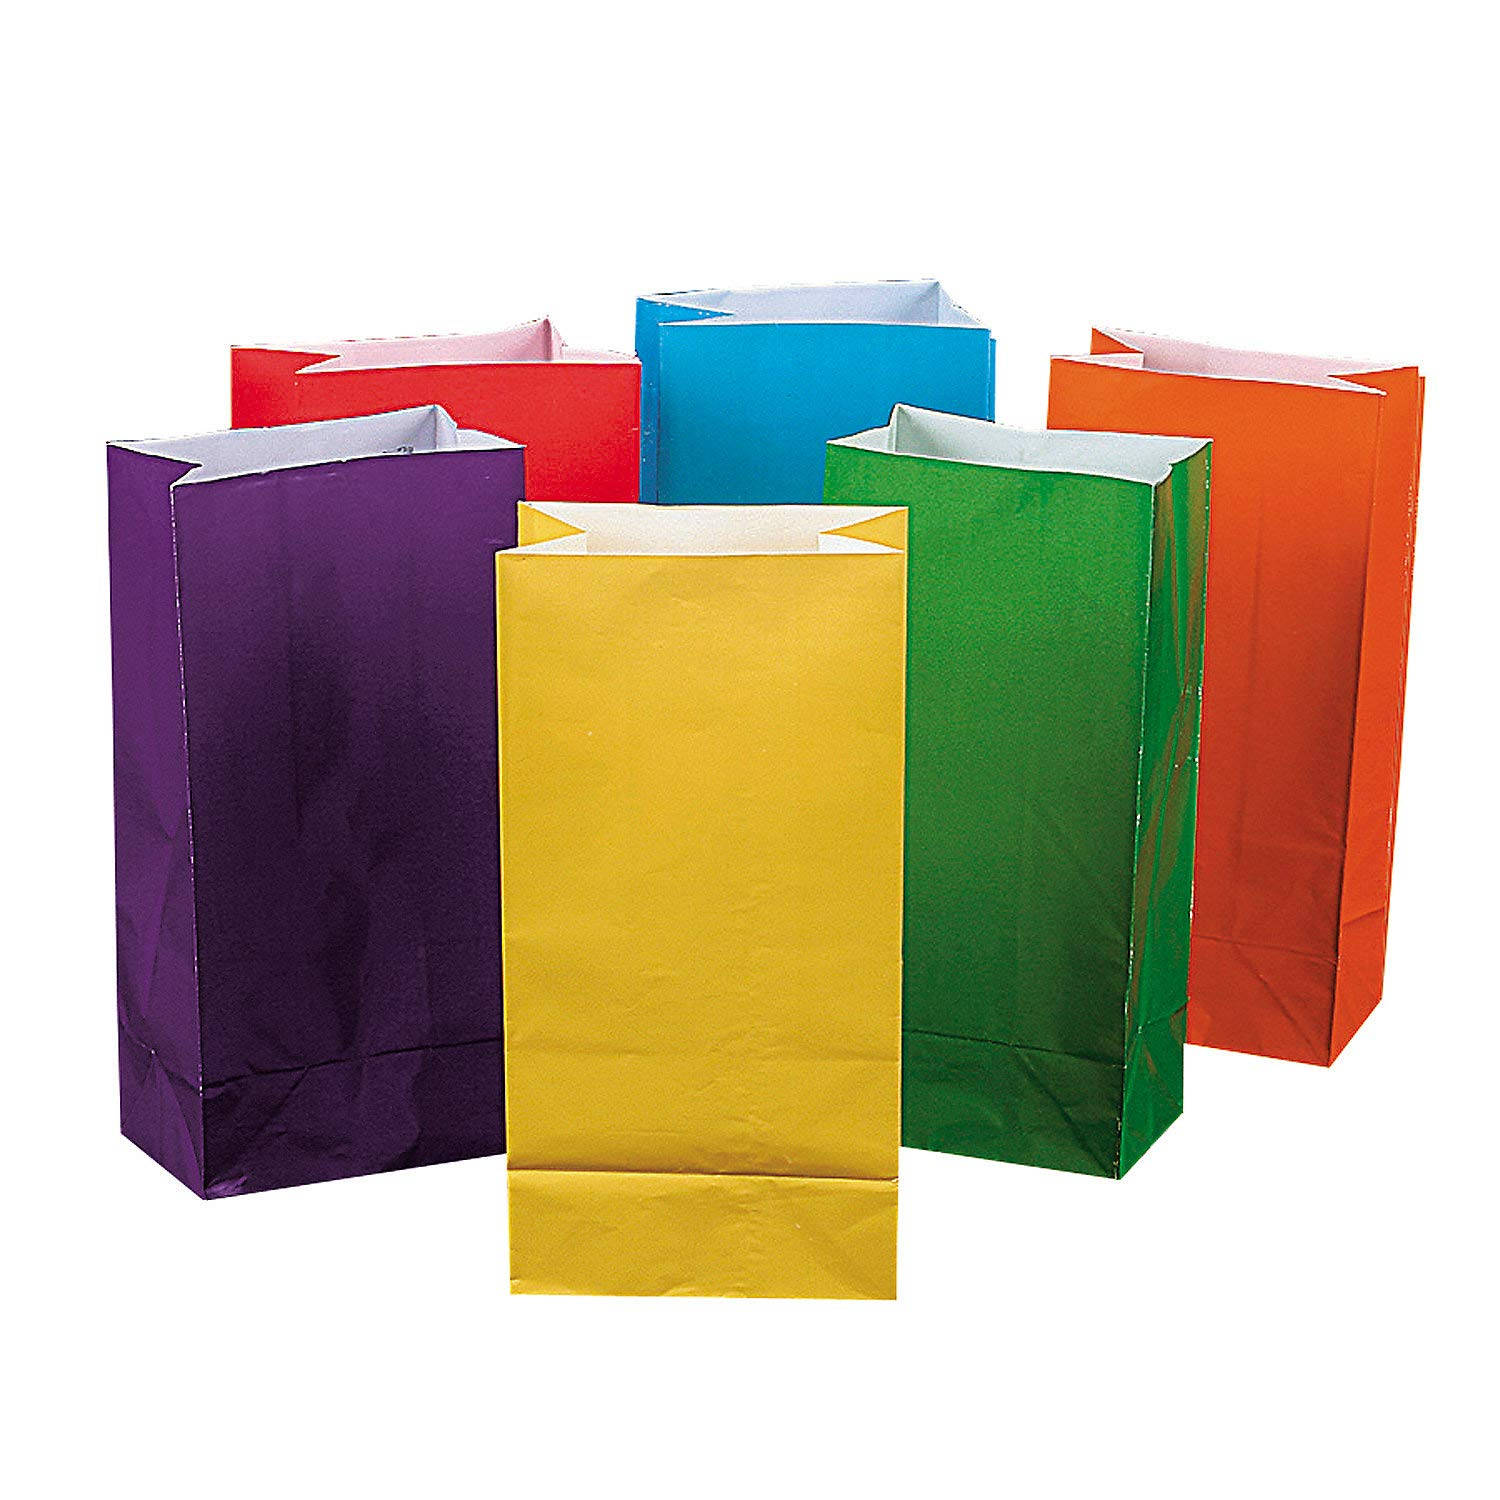 0b864cfde Amazon.com: Fun Express Bright Color Paper Bags (1 Dozen) - Bulk [Toy]:  Kitchen & Dining